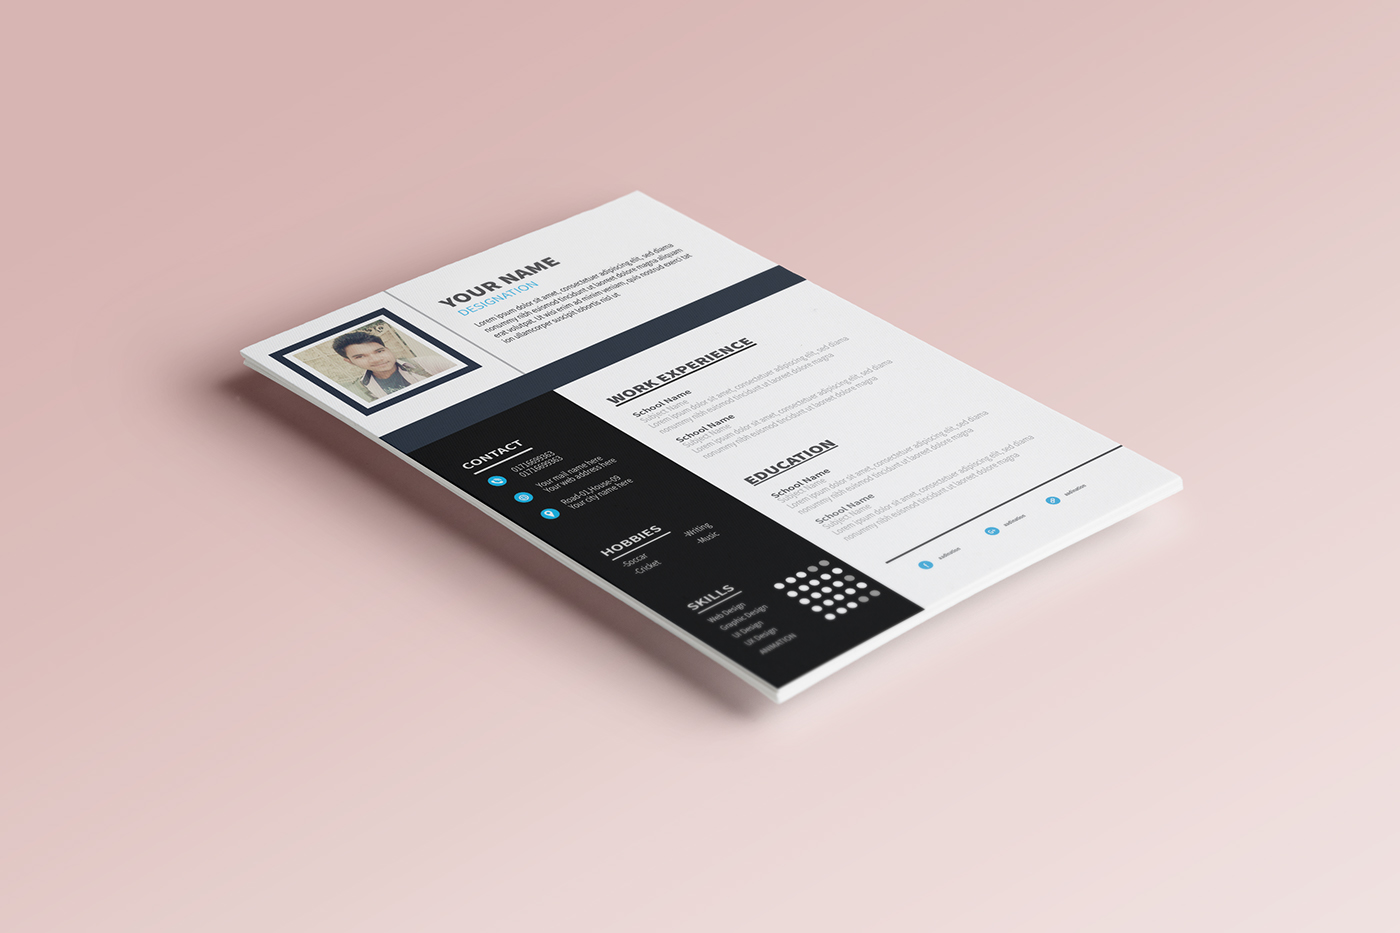 free flyer template,free resume template,Free CV Template,free cv,Free Resume,new resume,new cv 2018